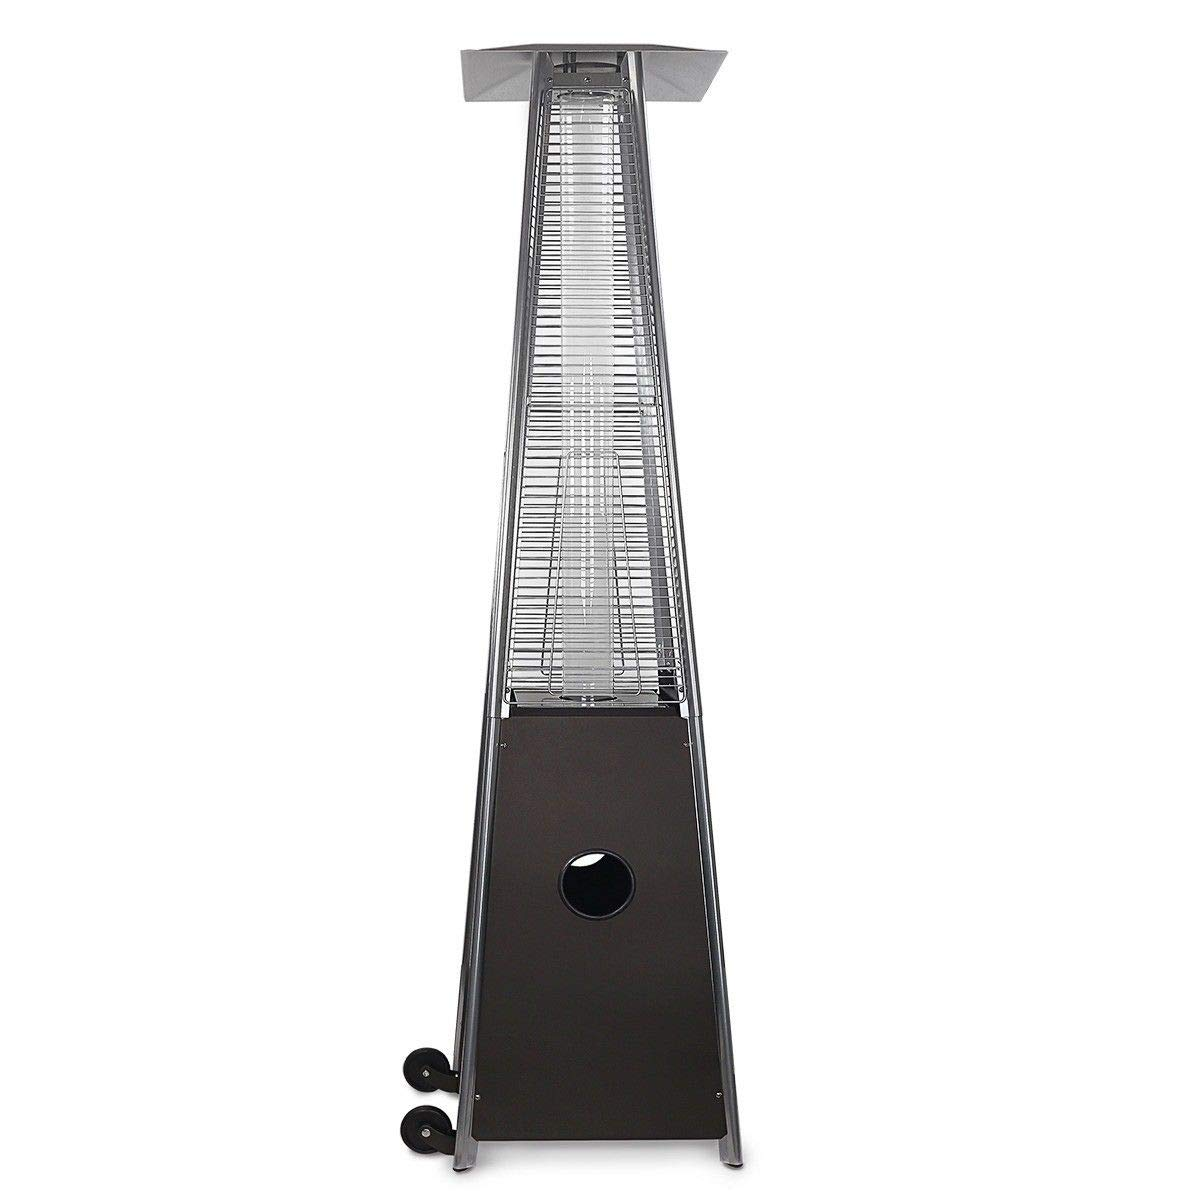 Hiland HLDSO1-WGTHG Pyramid Glass Tube Propane Patio Heater w/Wheels